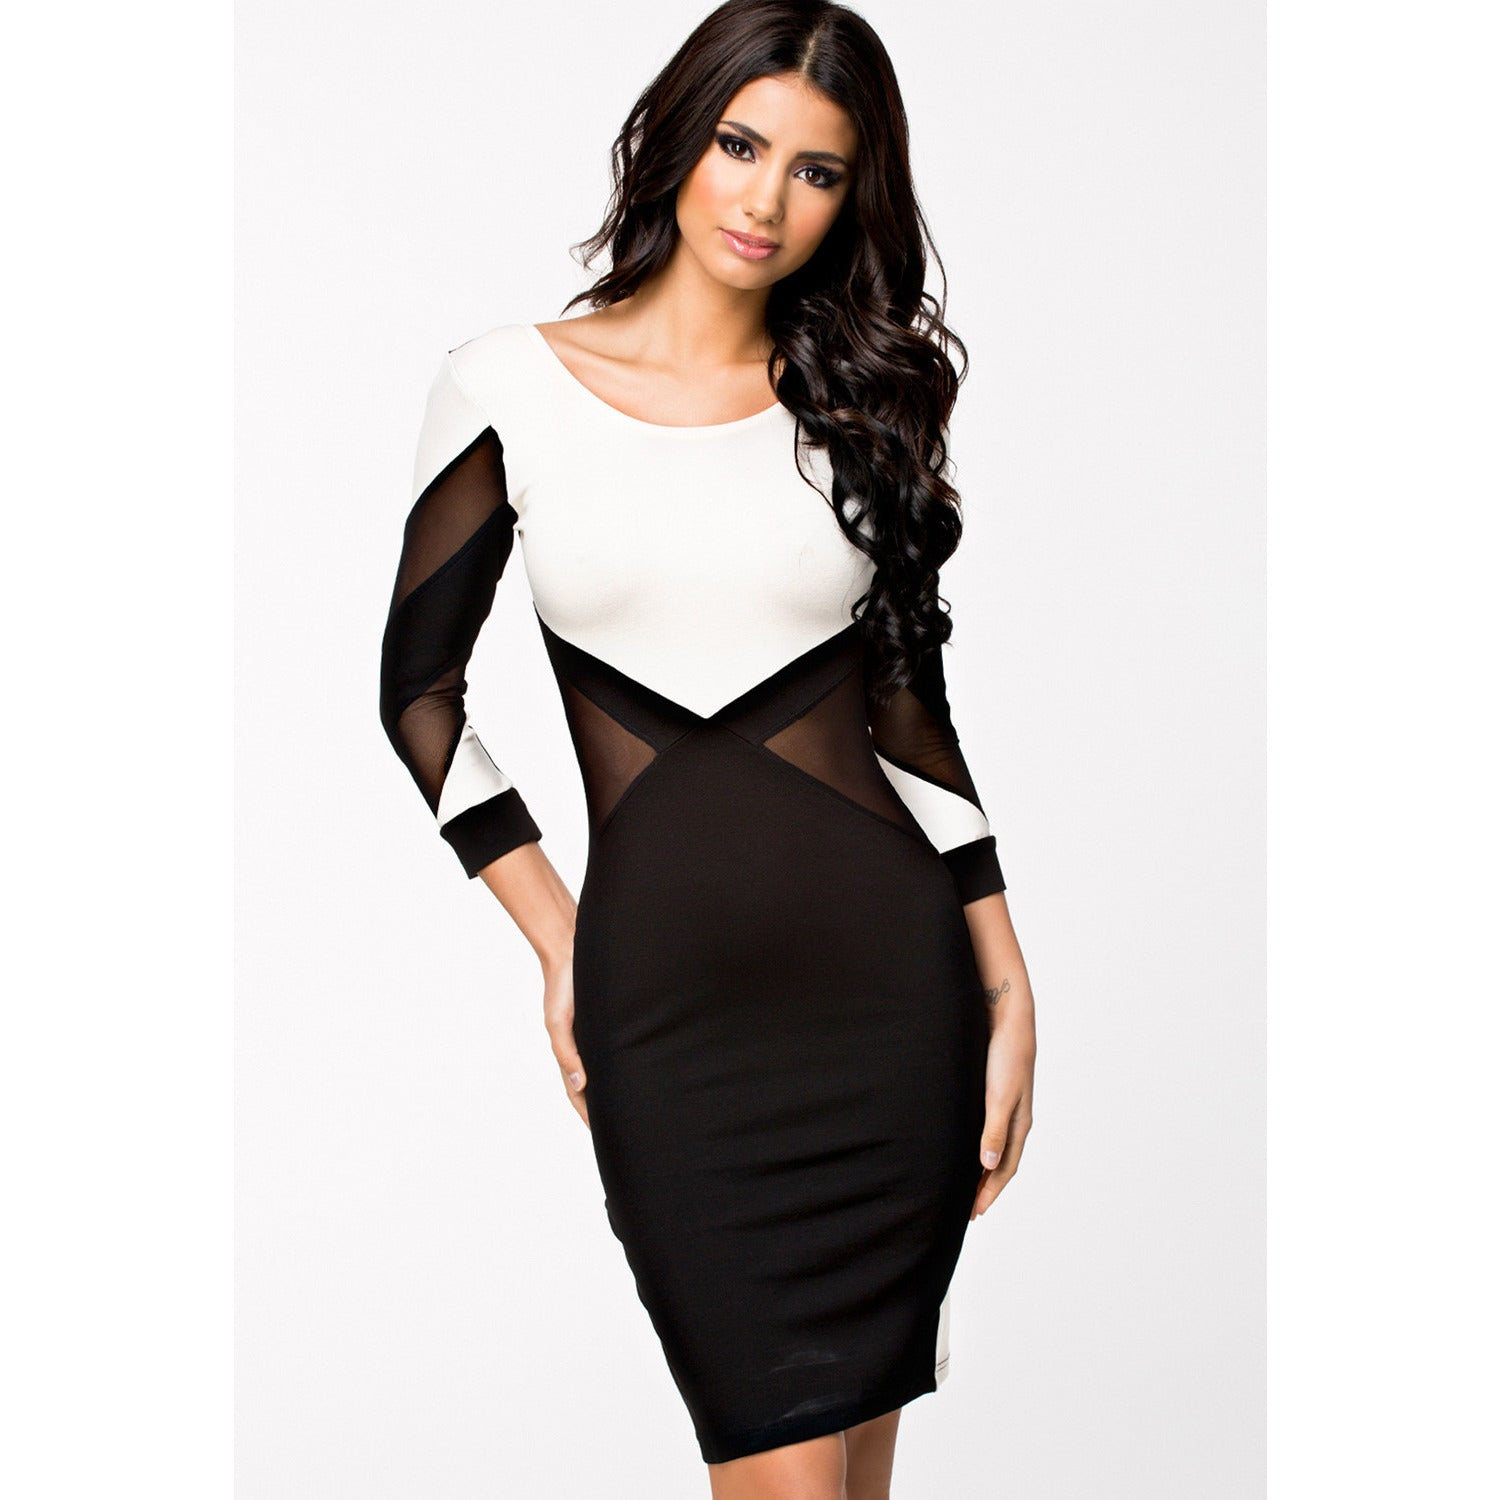 Stylish Long Sleeve Black And White Midi Dress LAVELIQ - LAVELIQ - 1